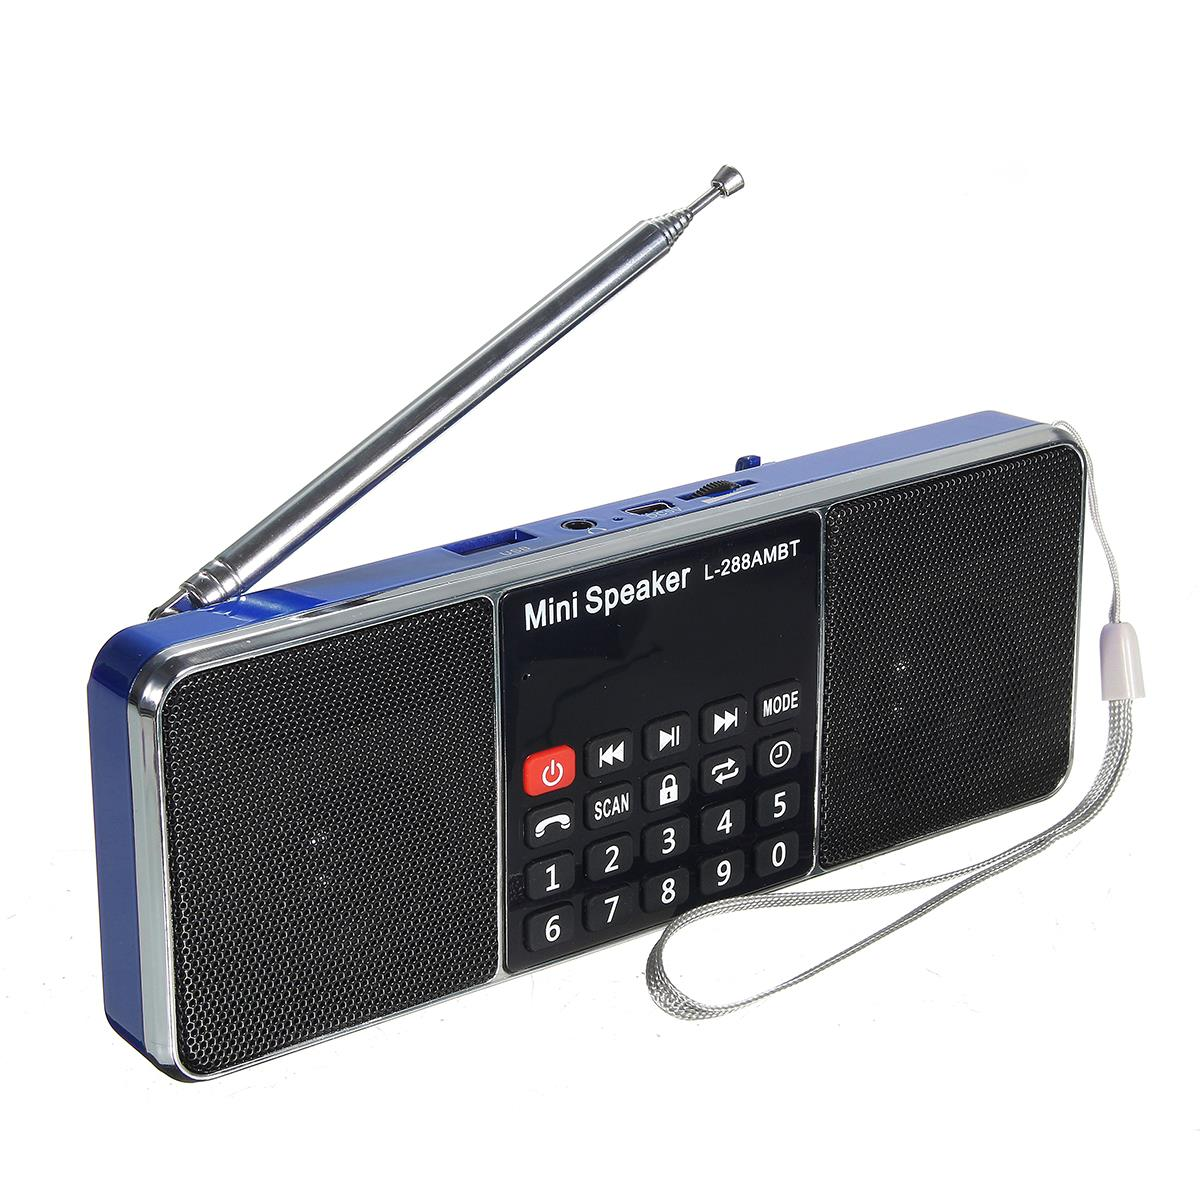 New Bluetooth Portable Lcd Fm Am Radio Stereo Speaker Mp3 Music One Chip Receiver Player Micro For Sd Usb Dual Loudspeaker